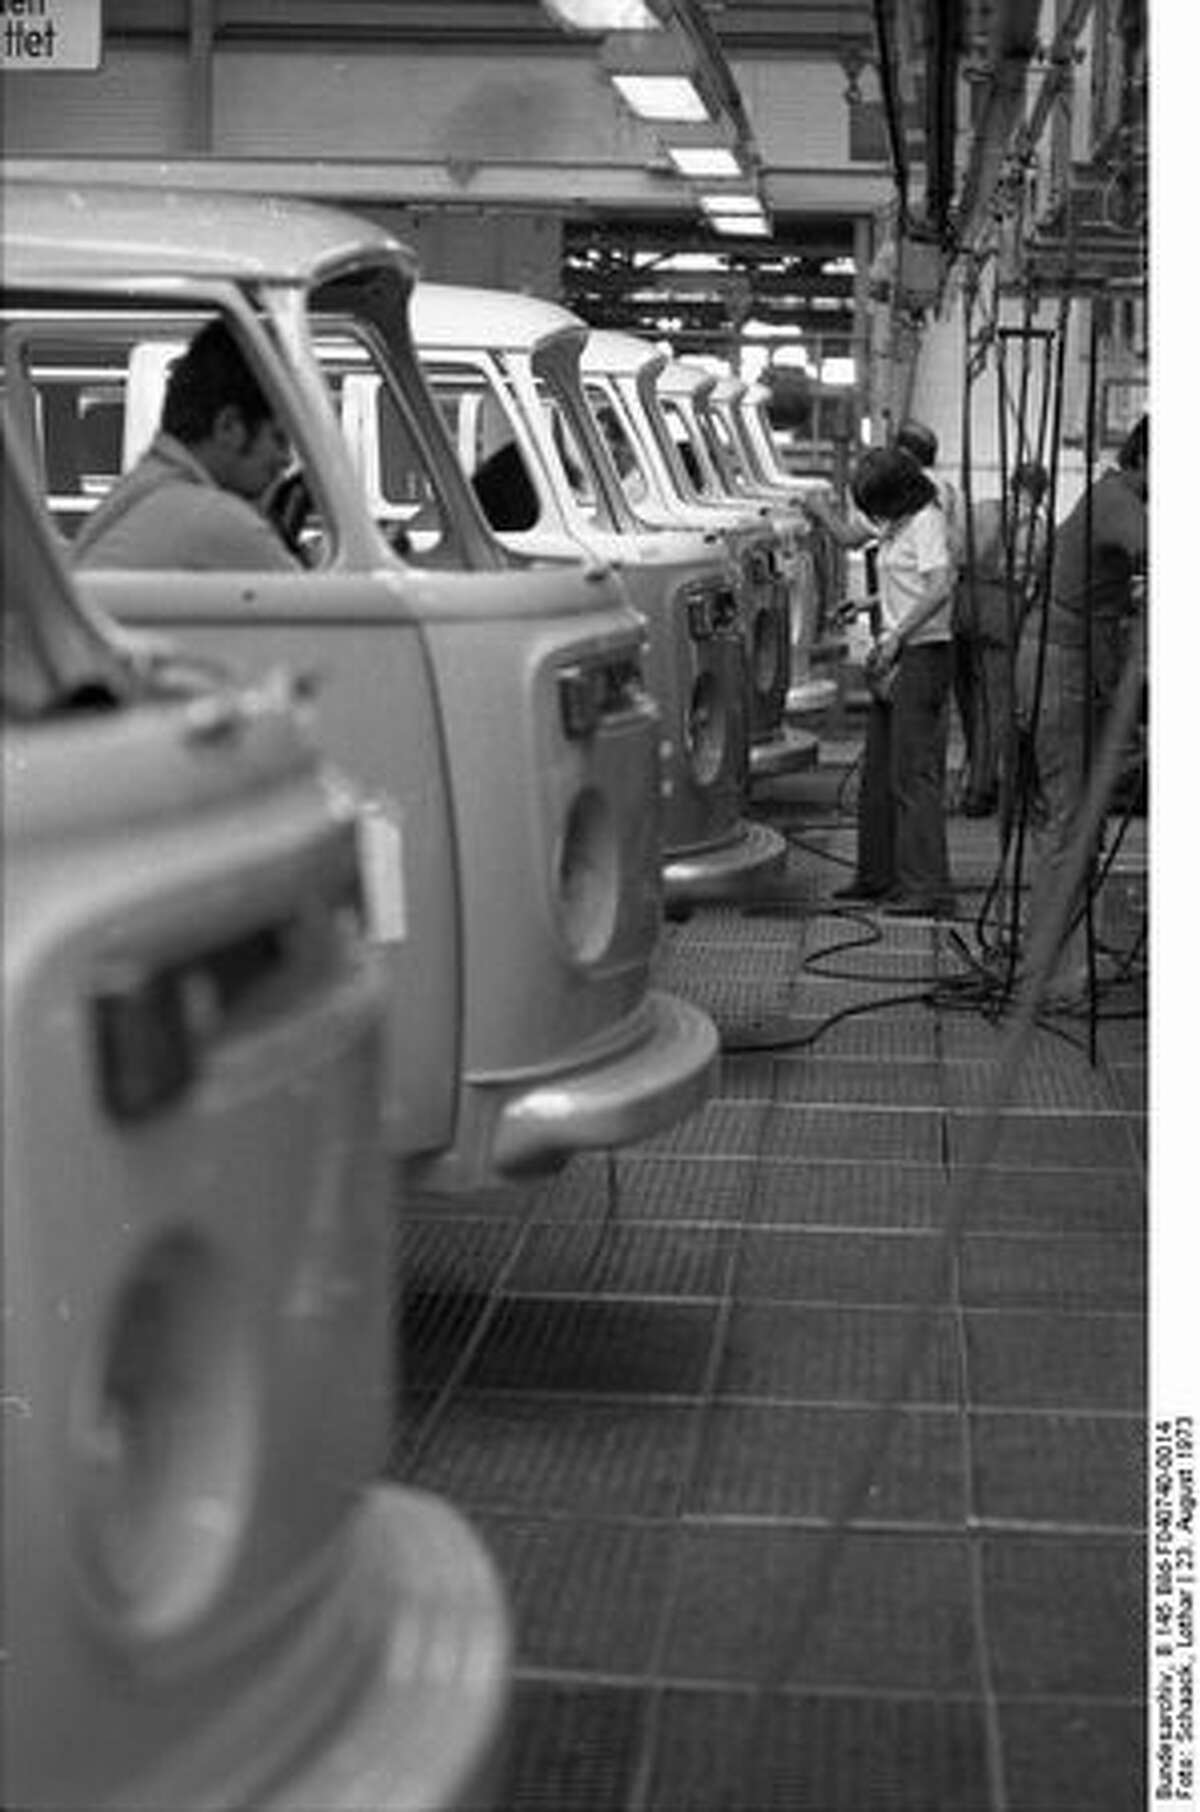 In this Aug. 23, 1973, photo, workers on the assembly line build Volkswagen Type 2 vans at VW Autowerks in Hannover, Germany. (Wikimedia Commons photo)